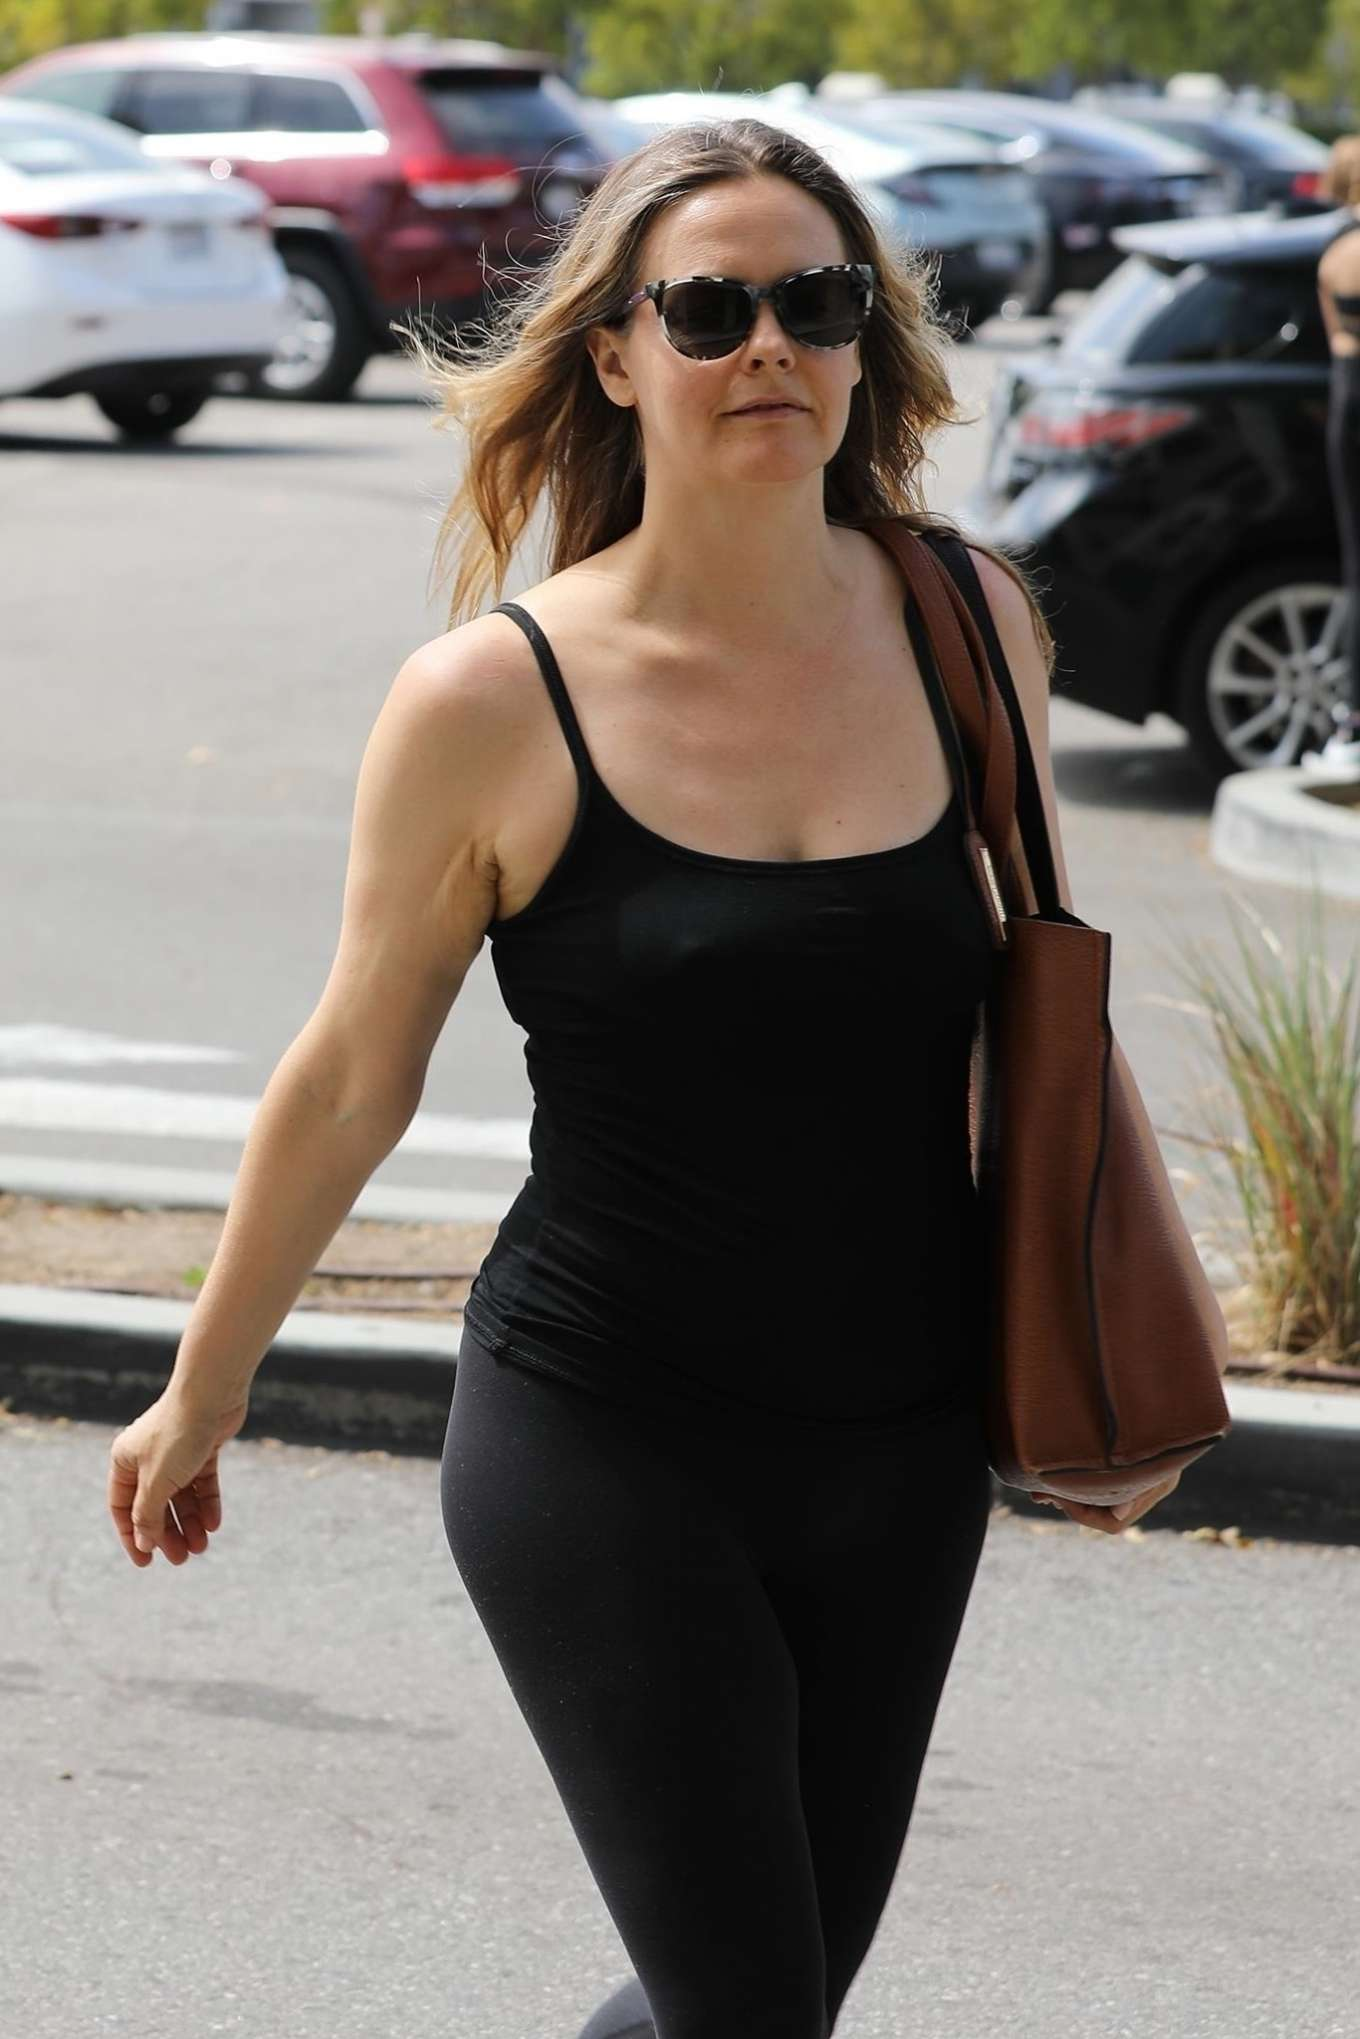 Alicia Silverstone - Spotted out in Los Angeles